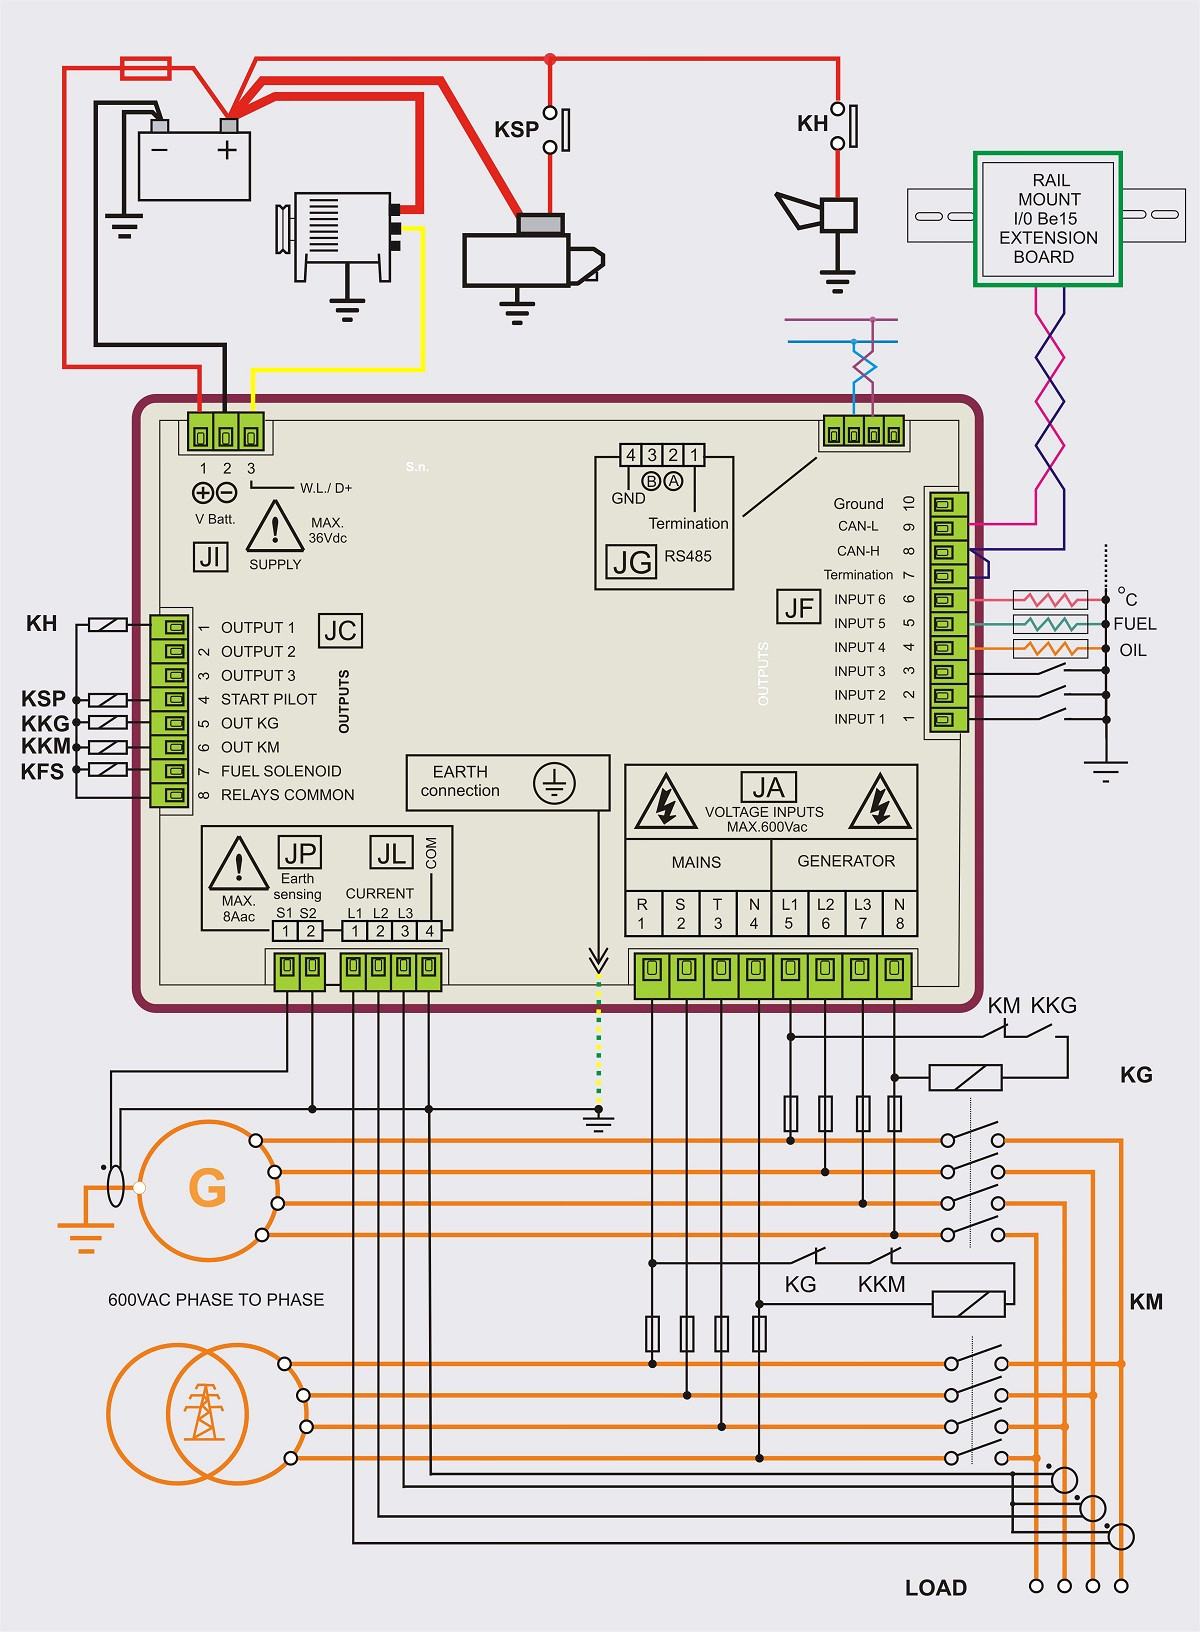 asco transfer switch wiring diagram Collection-Generac 100 Amp Automatic Transfer  Switch Wiring Diagram 16